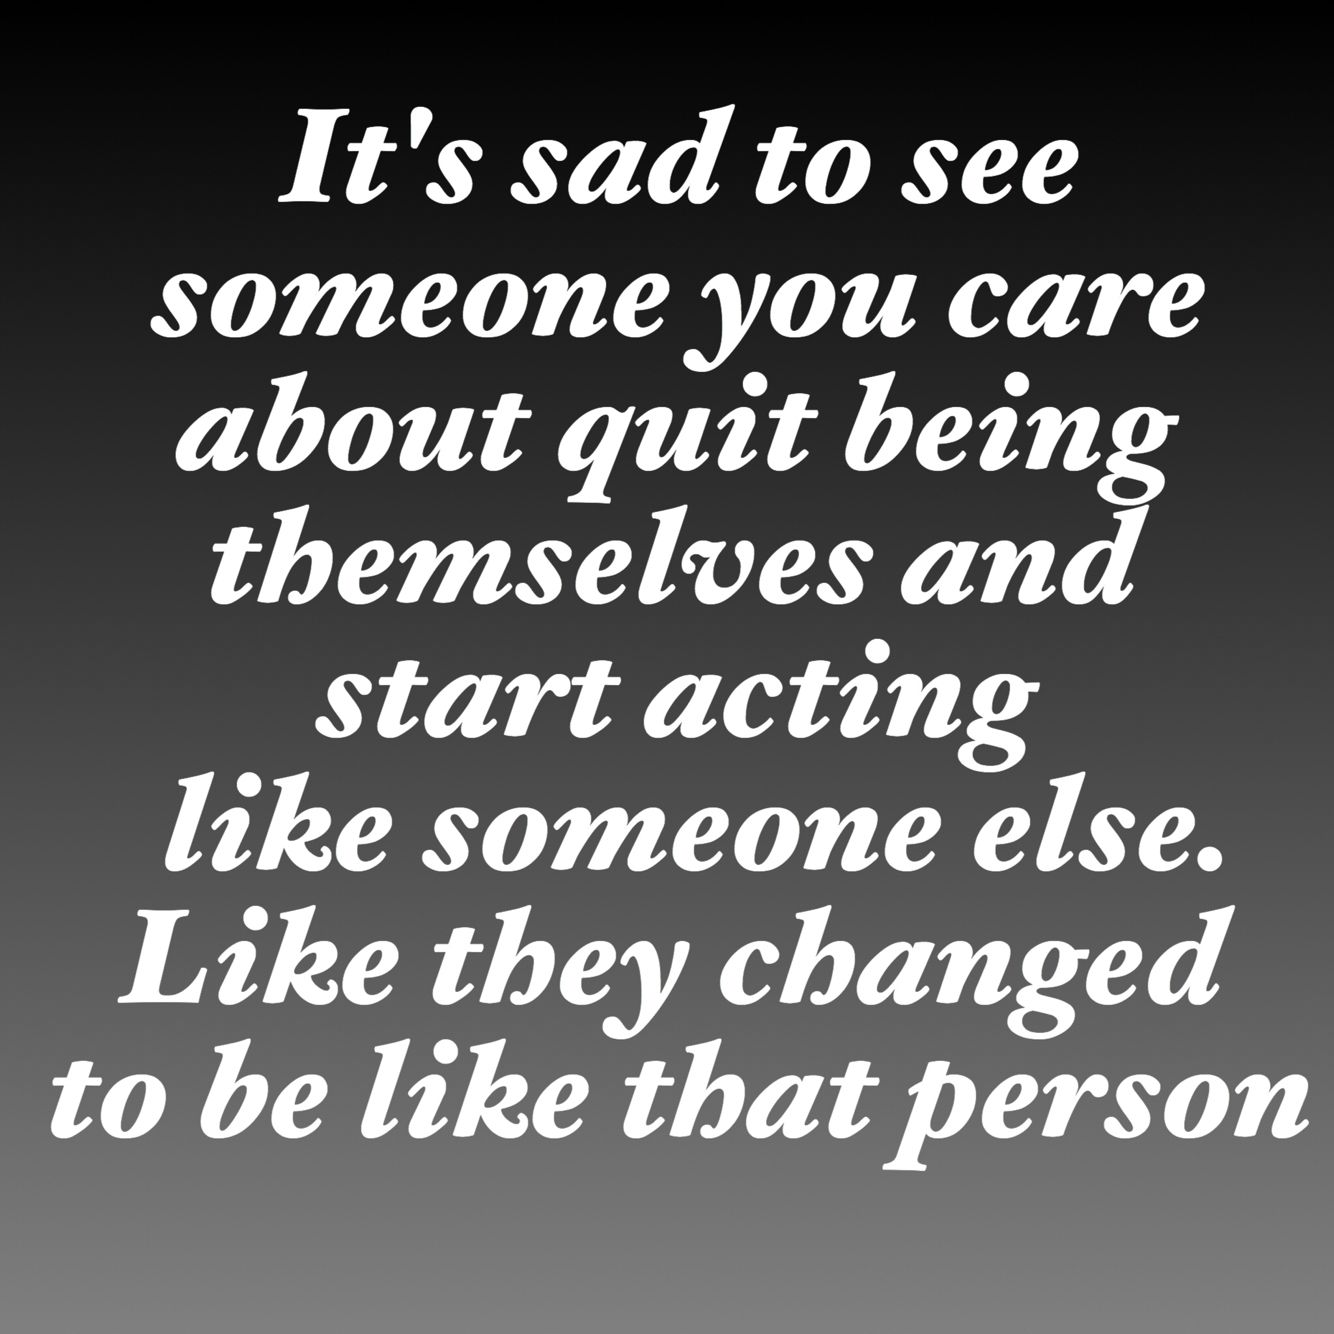 It's sad to see someone you care about quit being themselves and start acting like someone else. Like they changed to be like that person…